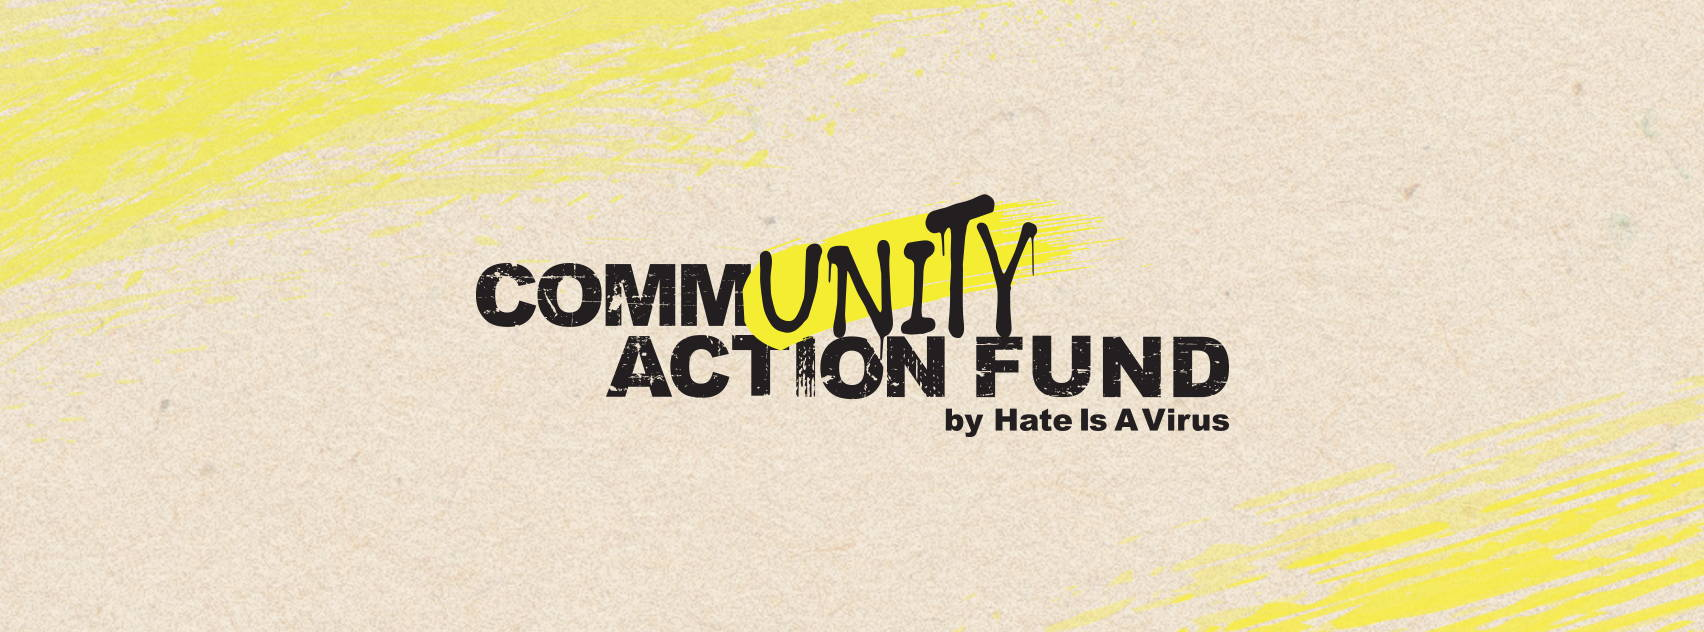 Hate Is A Virus Community Action Fund